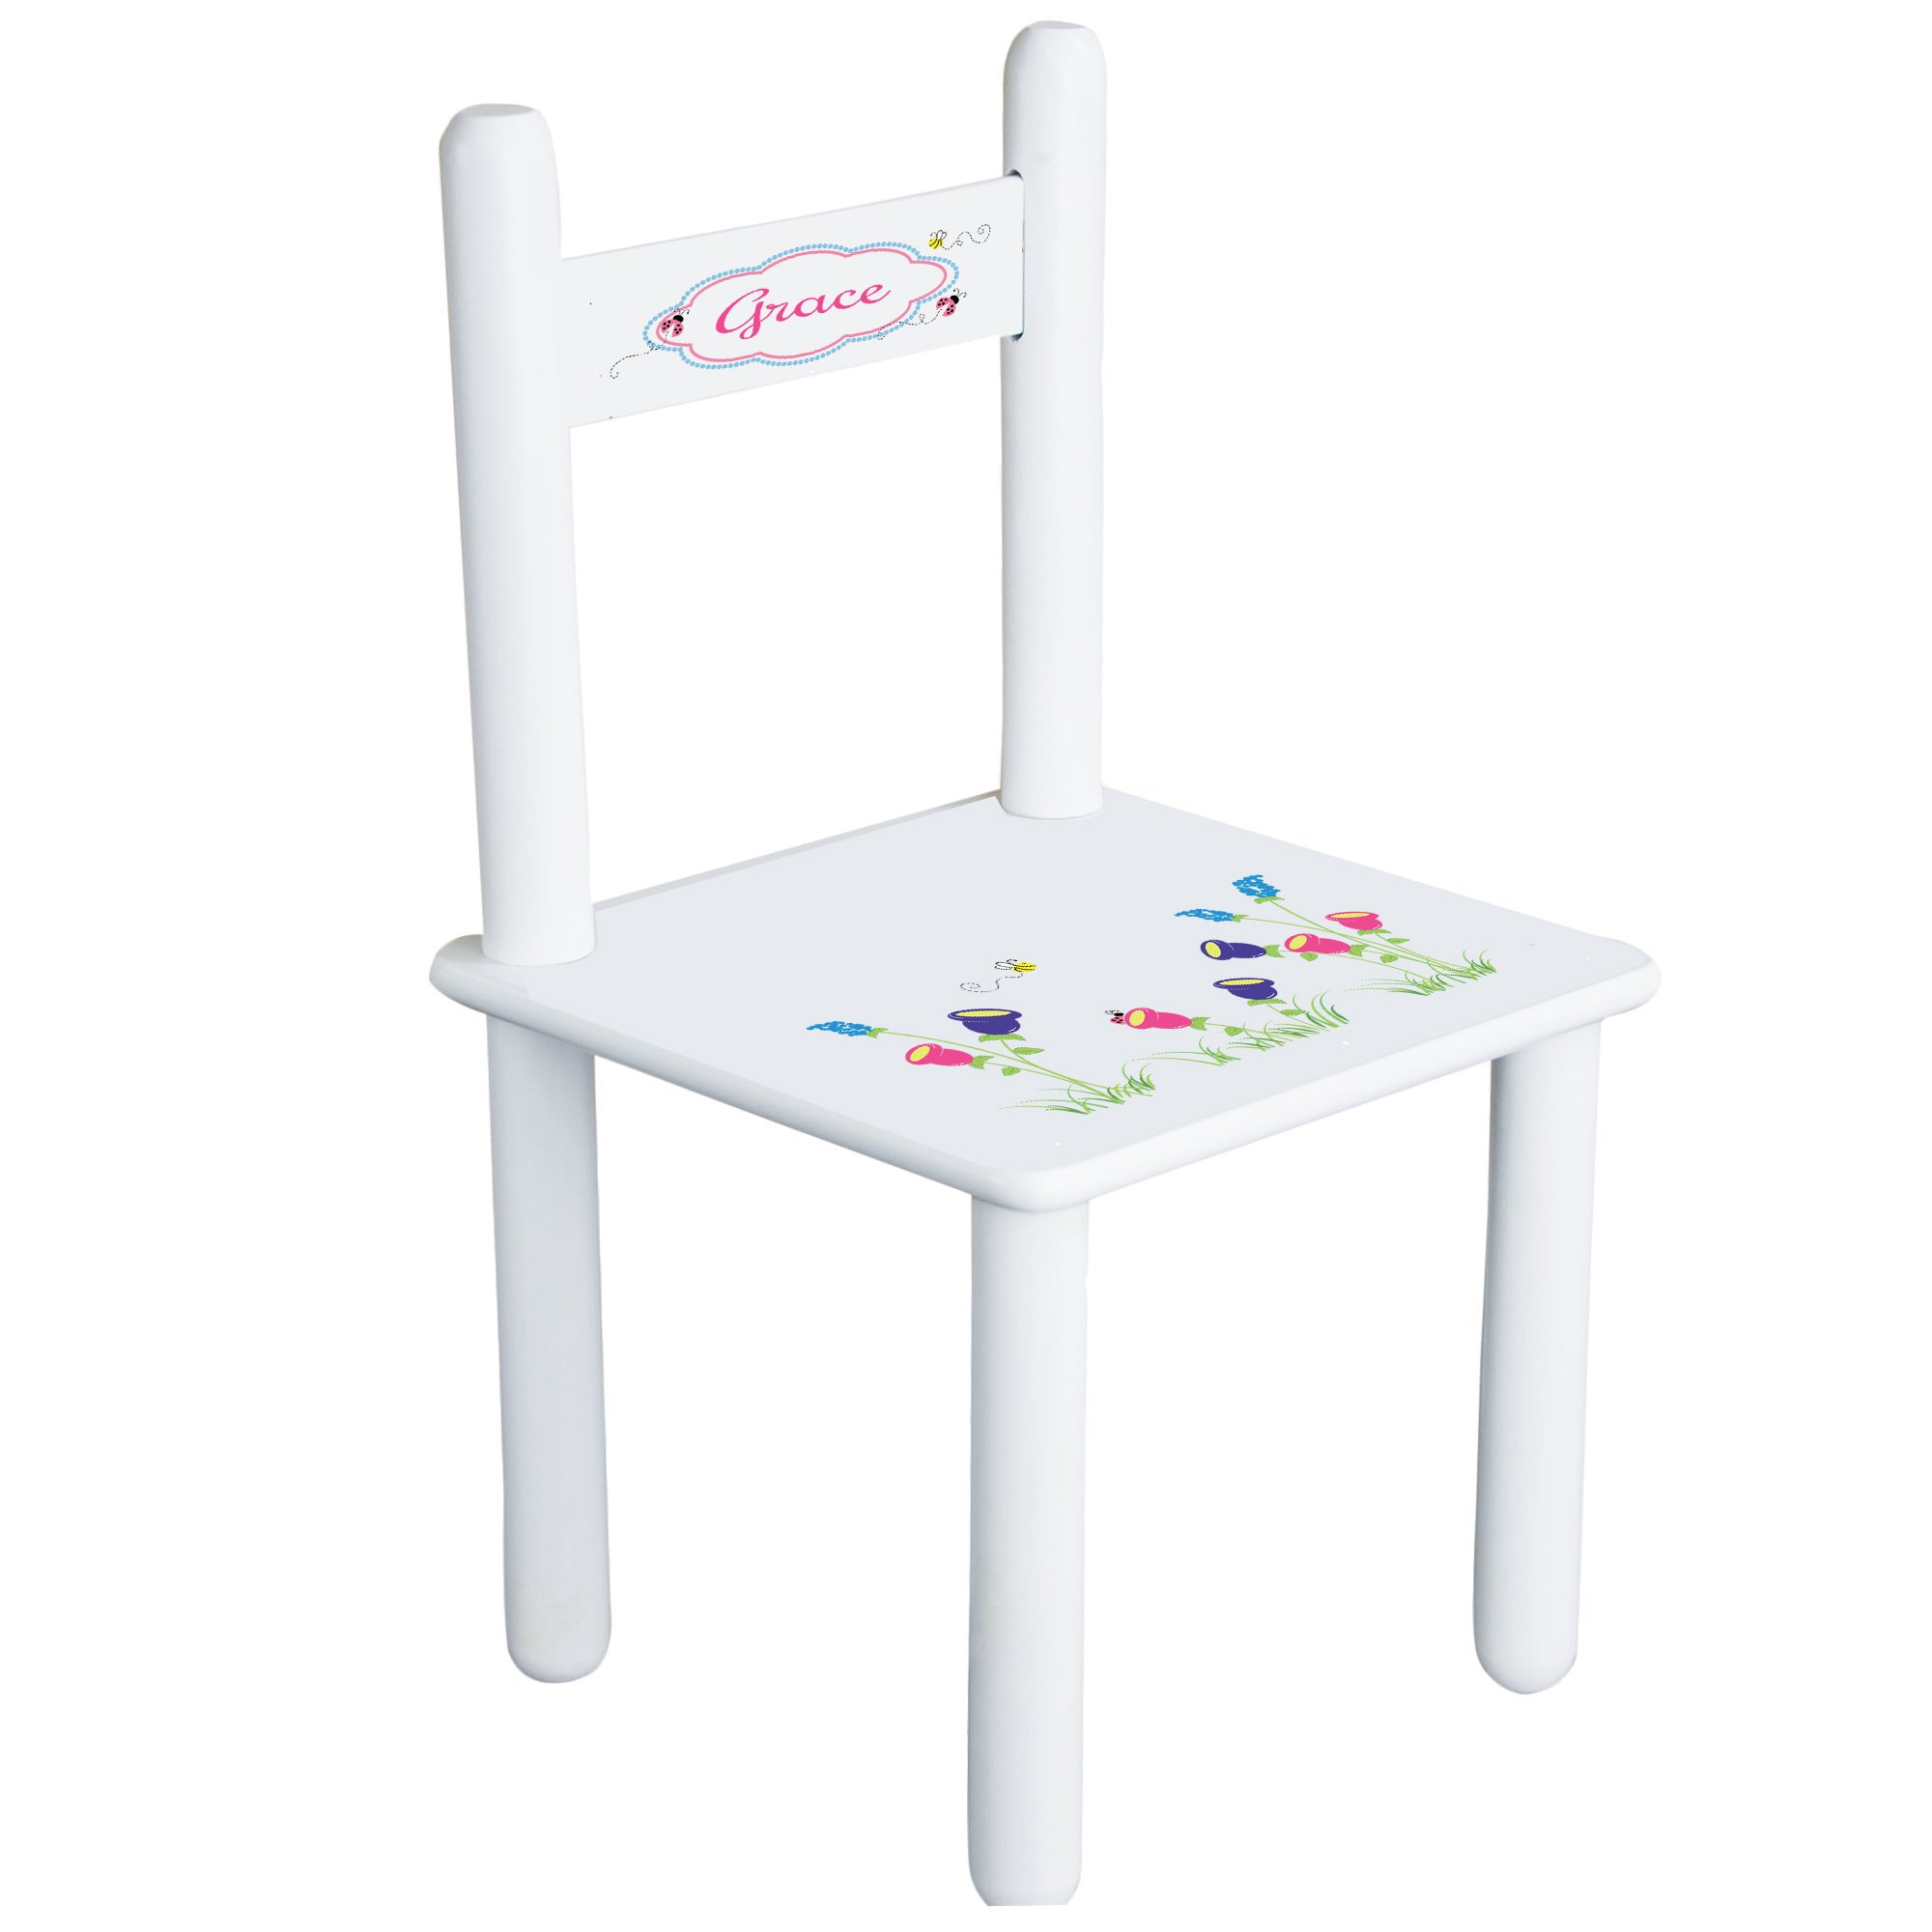 Personalized English Garden Child's Chair - white